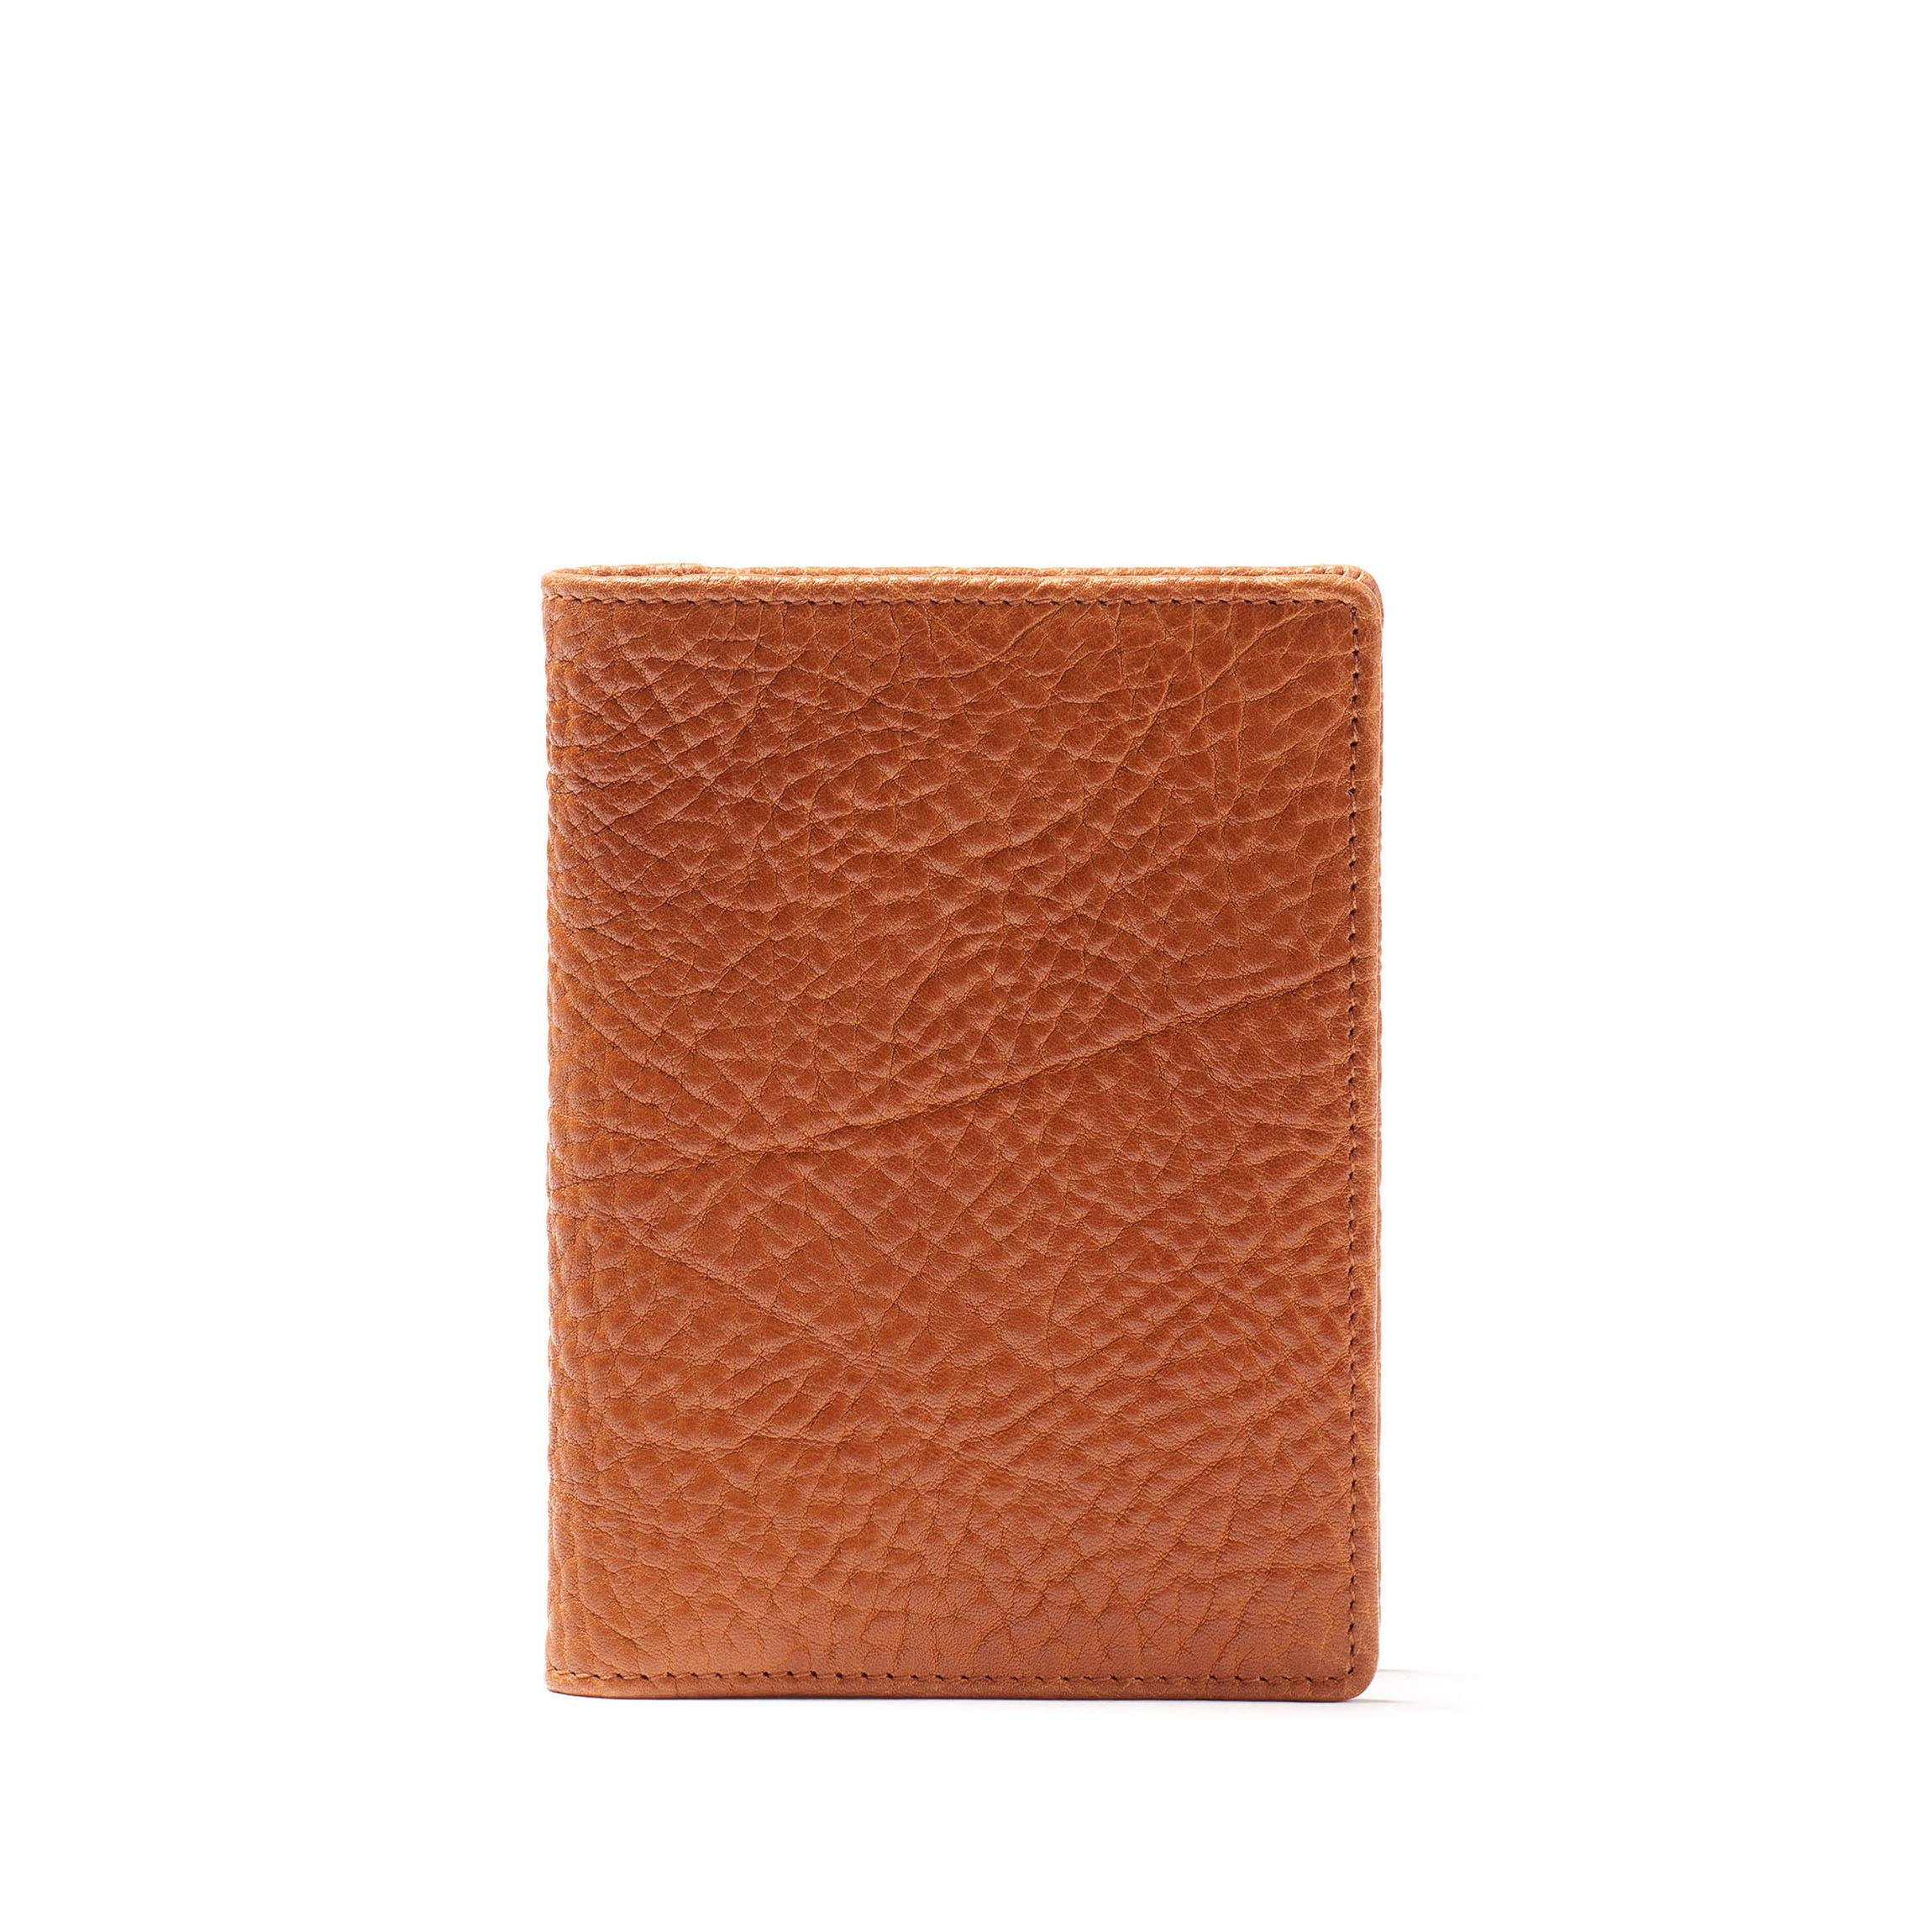 Deluxe Passport Cover - Italian Leather - Whiskey (brown)